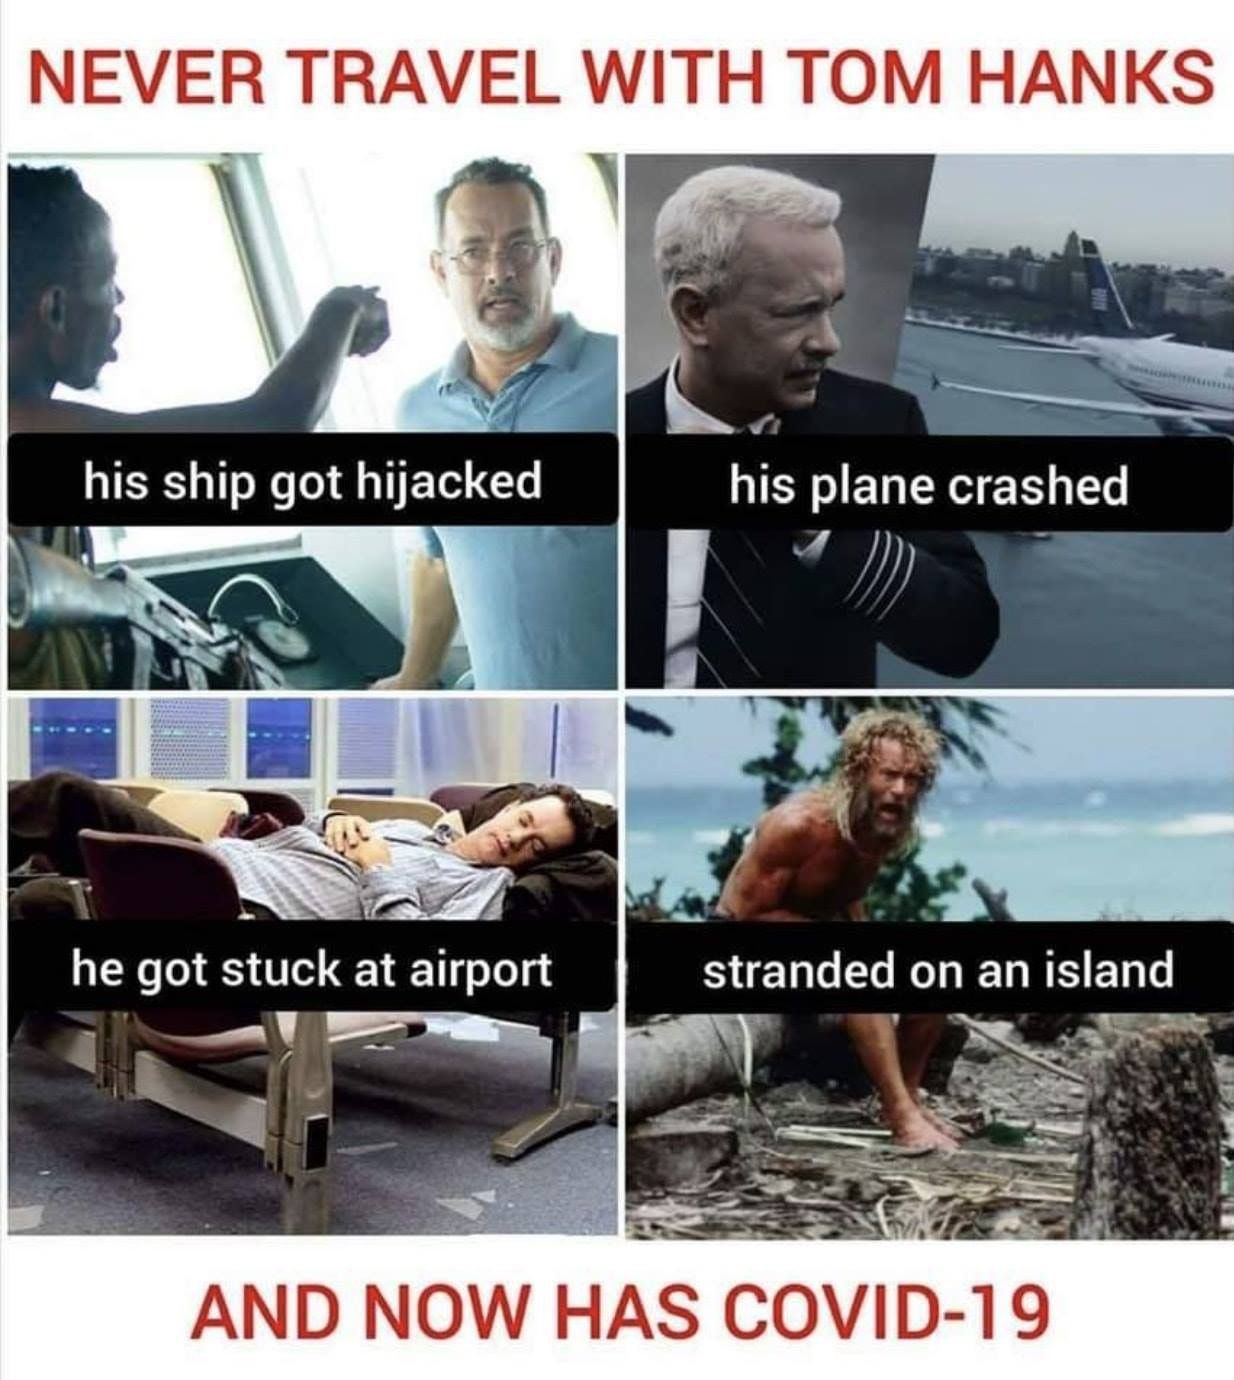 Pin by Norma Jolivette on KMSL!! in 2020 Tom hanks